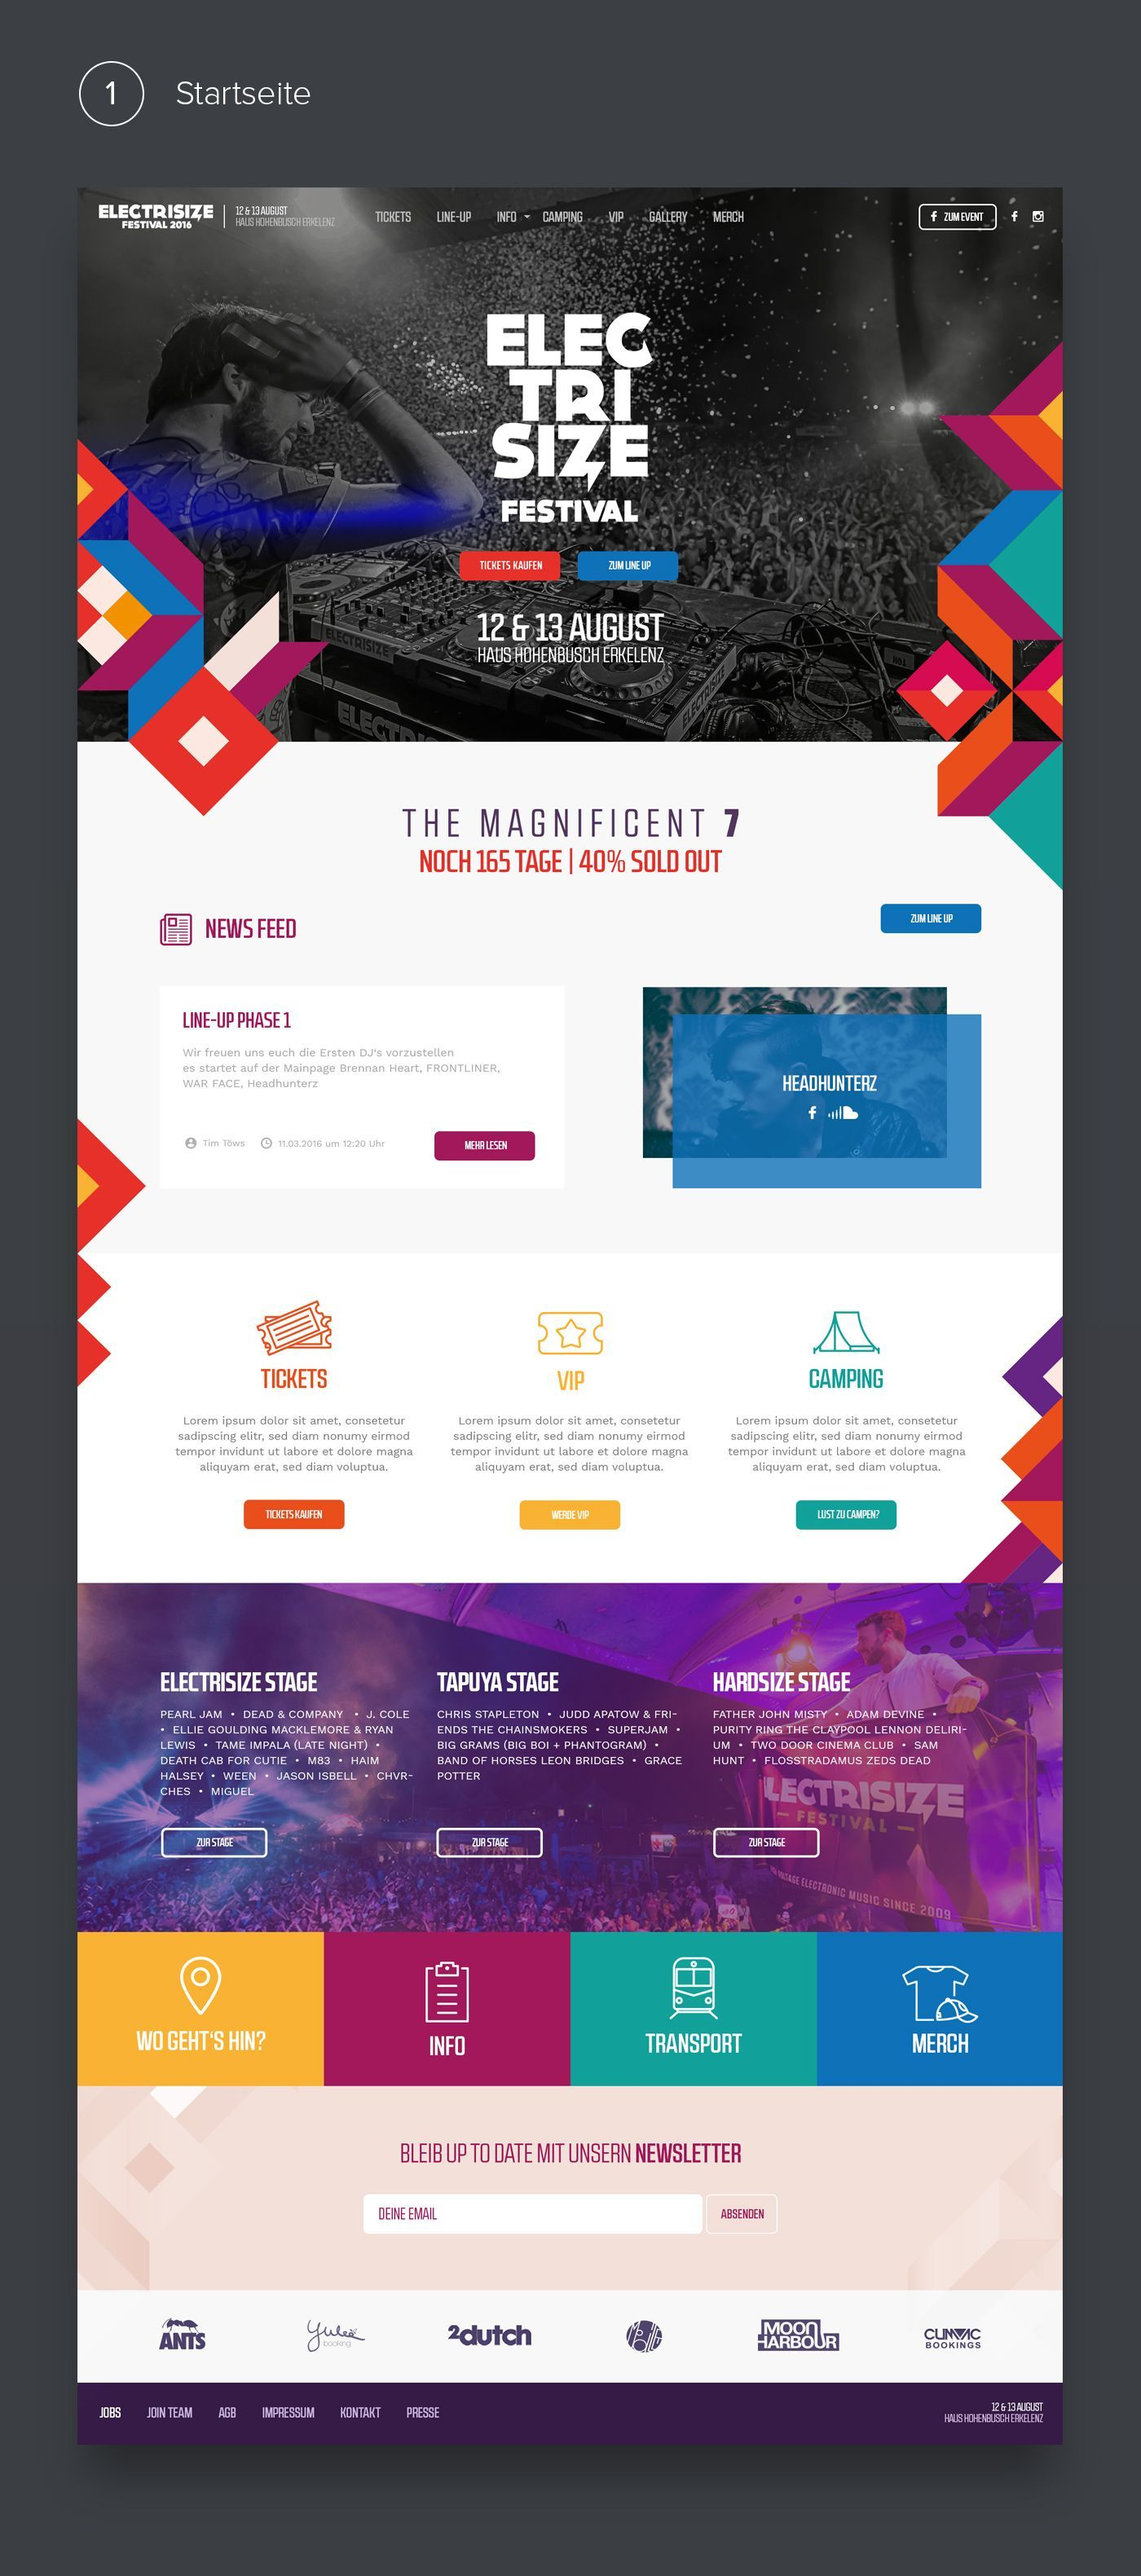 Electrisize Website Design 2016 Web Design And Corporate Design For A Festival In Germany Electr En 2020 Diseno De Sitios Web Disposicion De Diseno Web Diseno Web